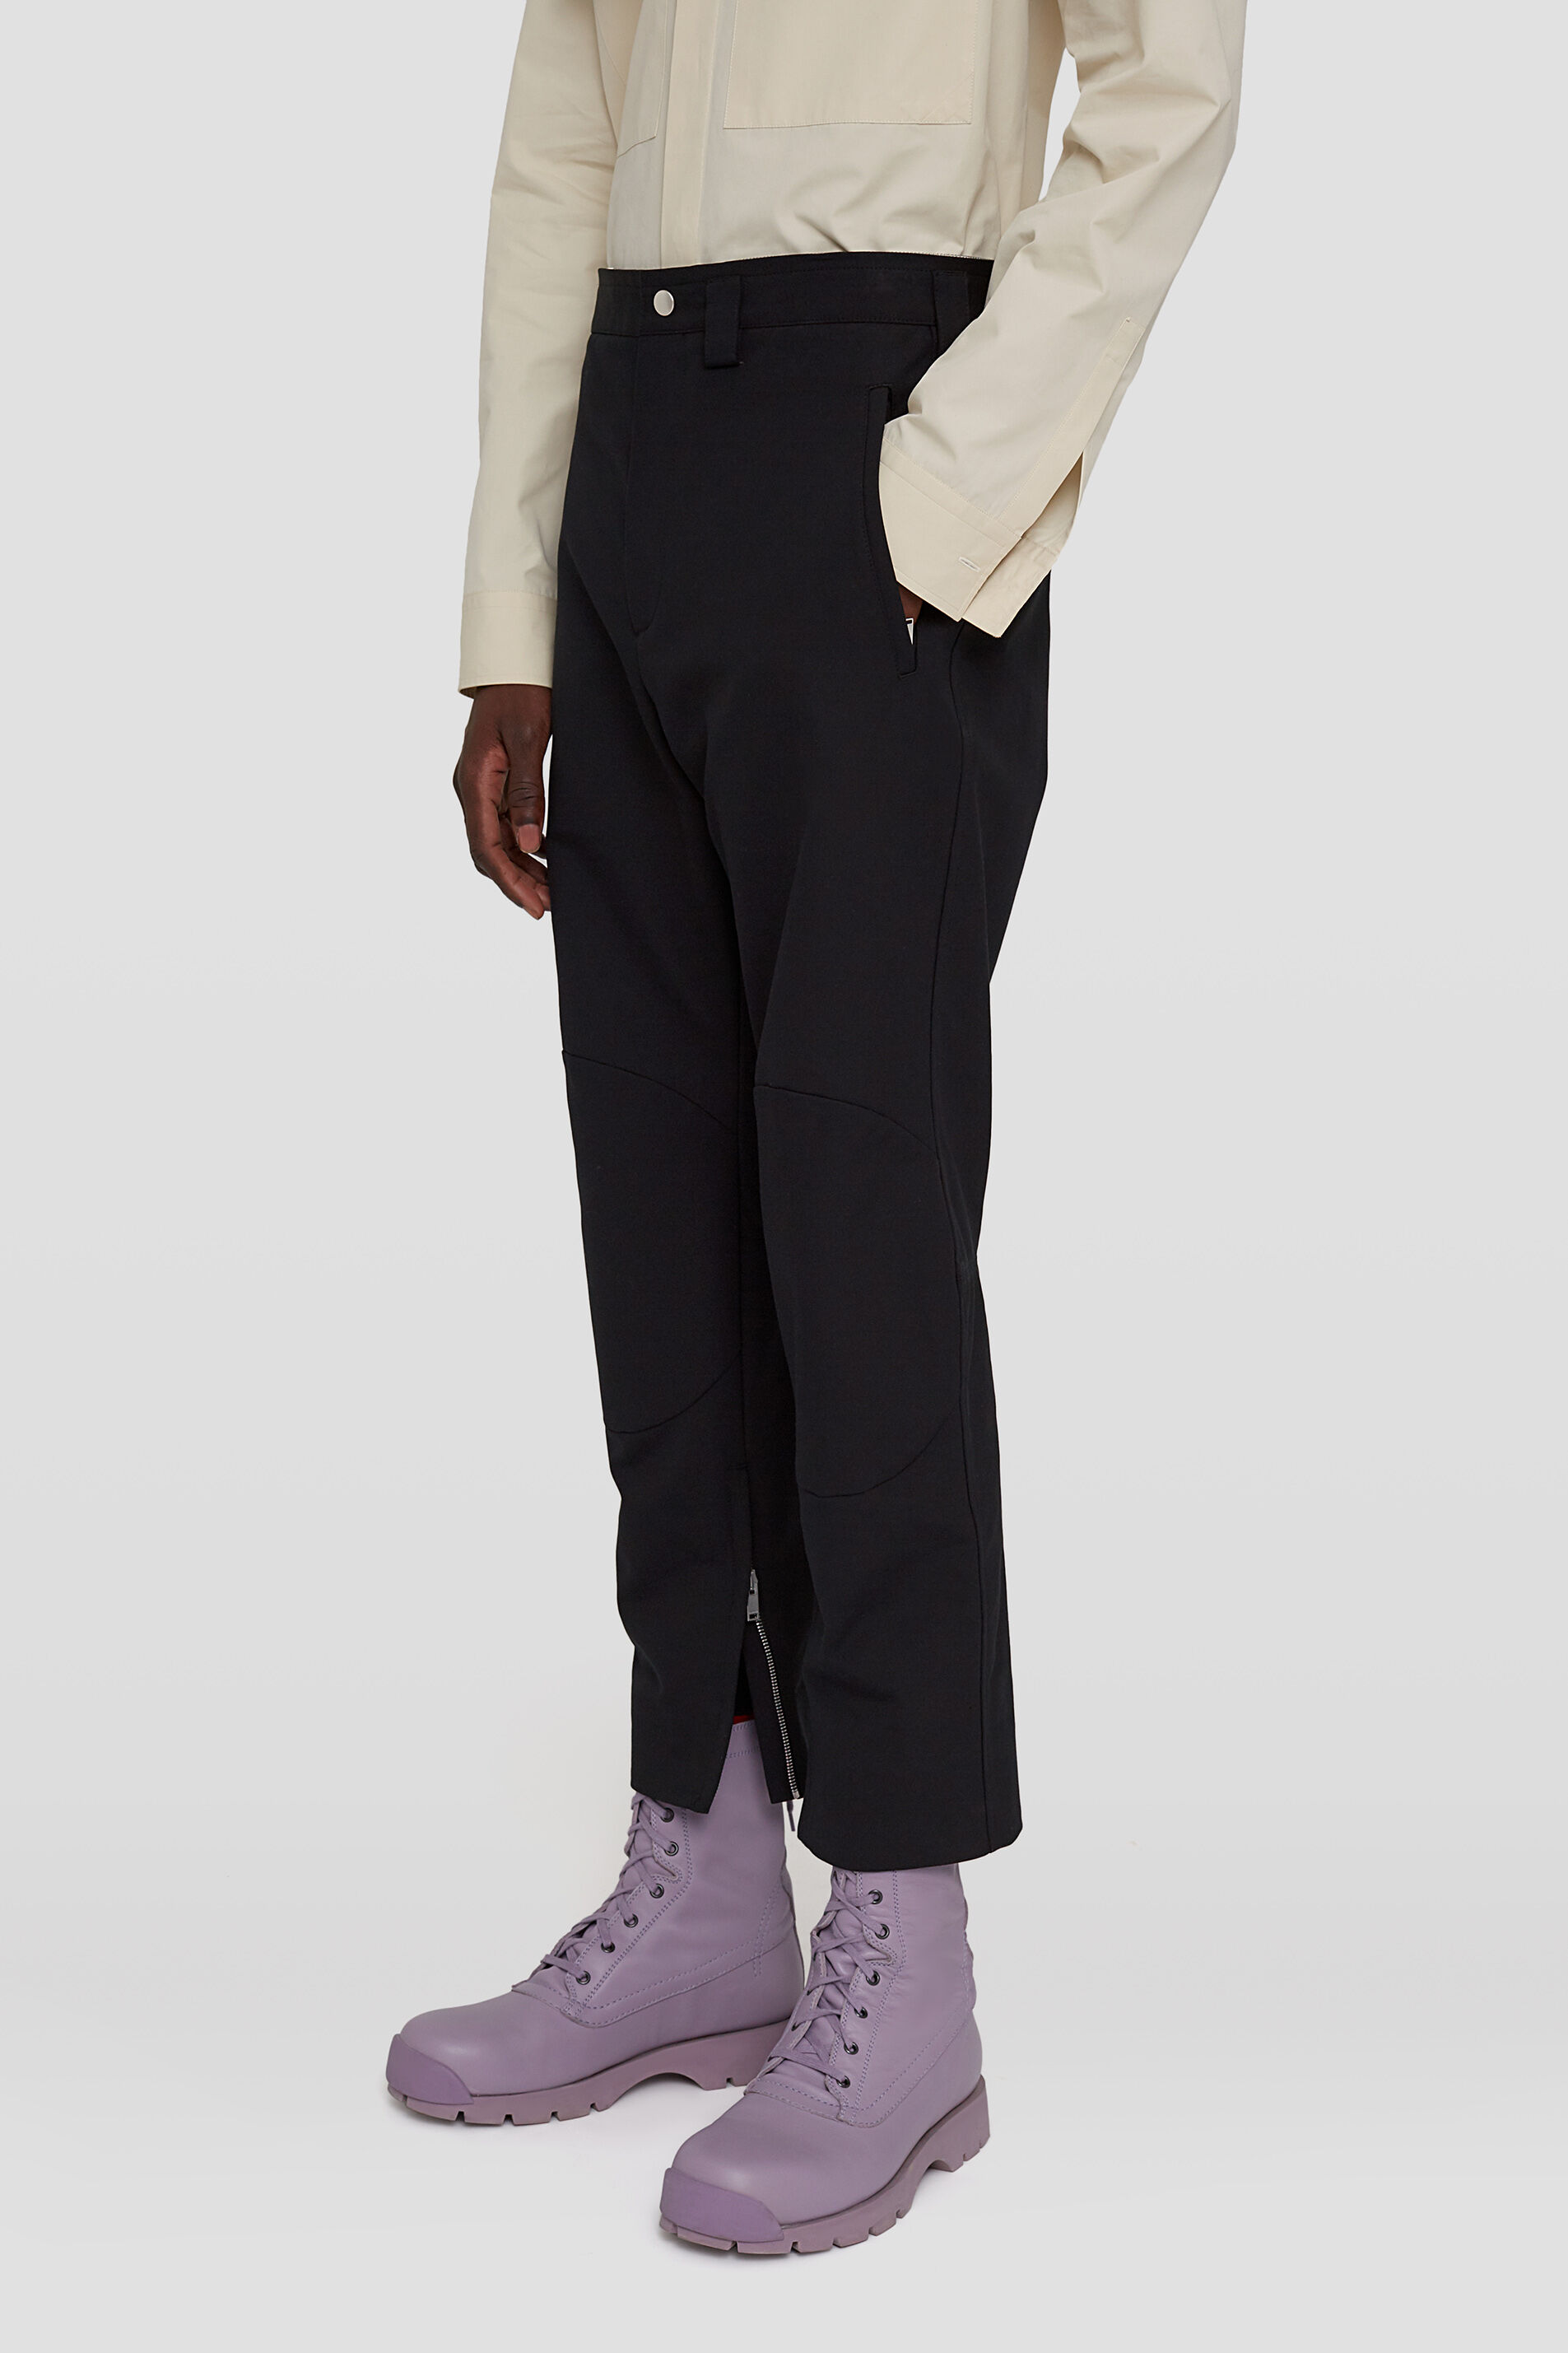 Zipped-Ankle Trousers, black, large